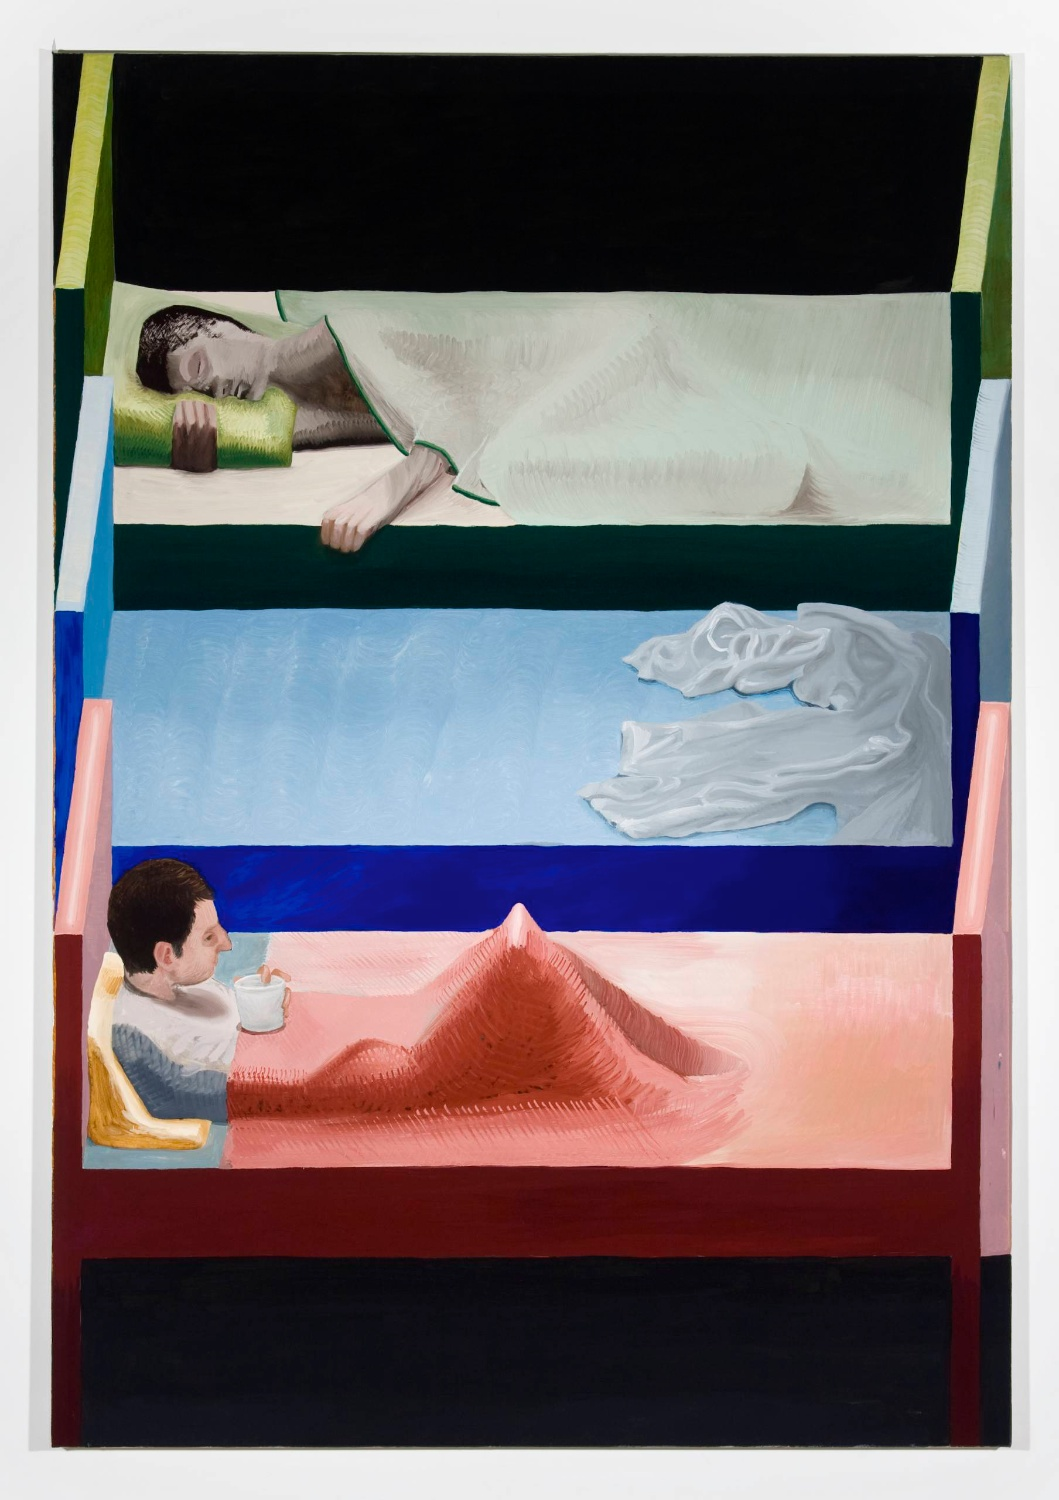 Jesse Chapman  The Beds  2008 Oil on linen 57 ⅛h x 39 ⅜w in